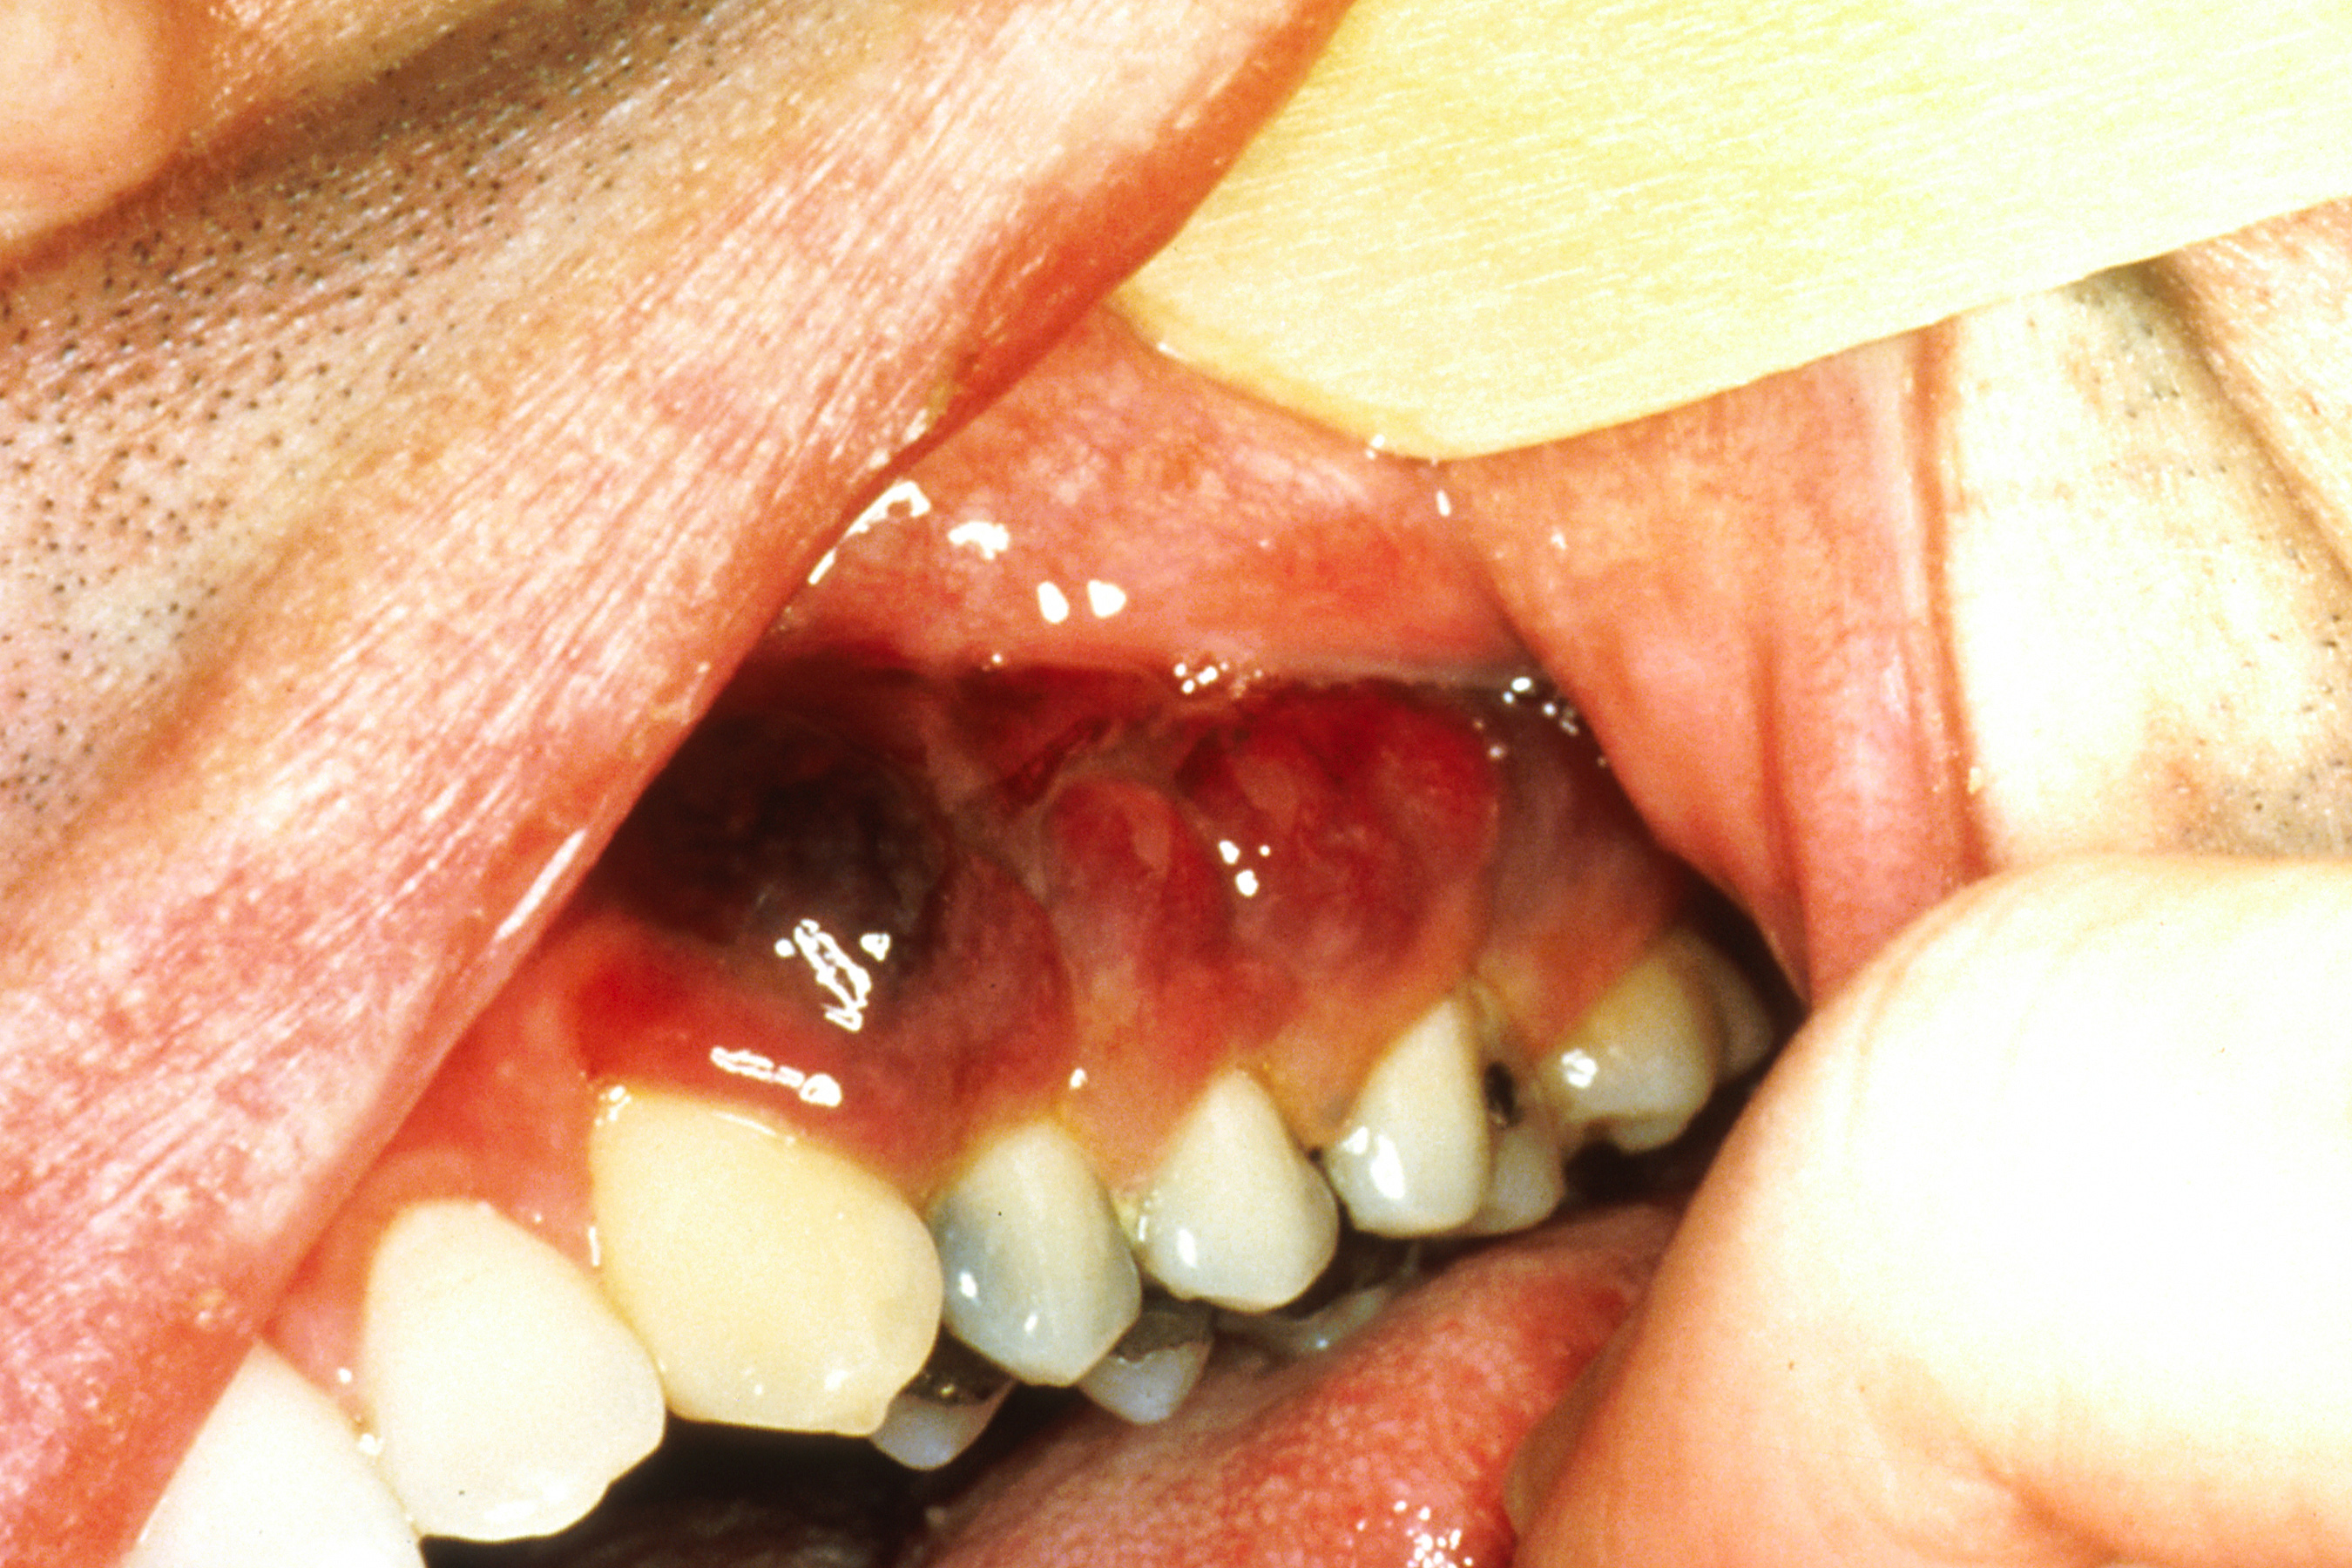 File:Intraoral Kaposi's sarcoma.jpg - Wikimedia Commons Kaposi Sarcoma Mouth